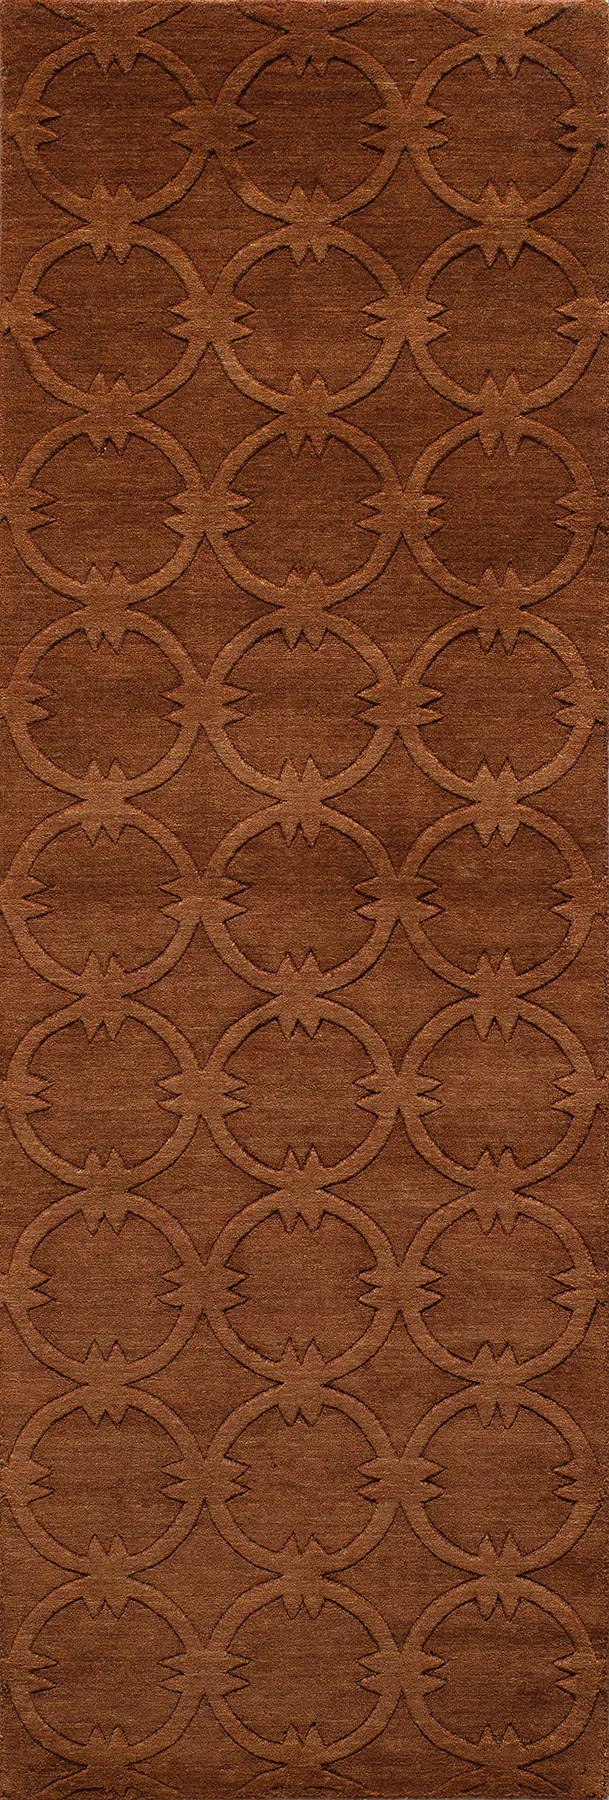 Amacker Hand-Woven Copper Area Rug Rug Size: Rectangle 2' x 3'